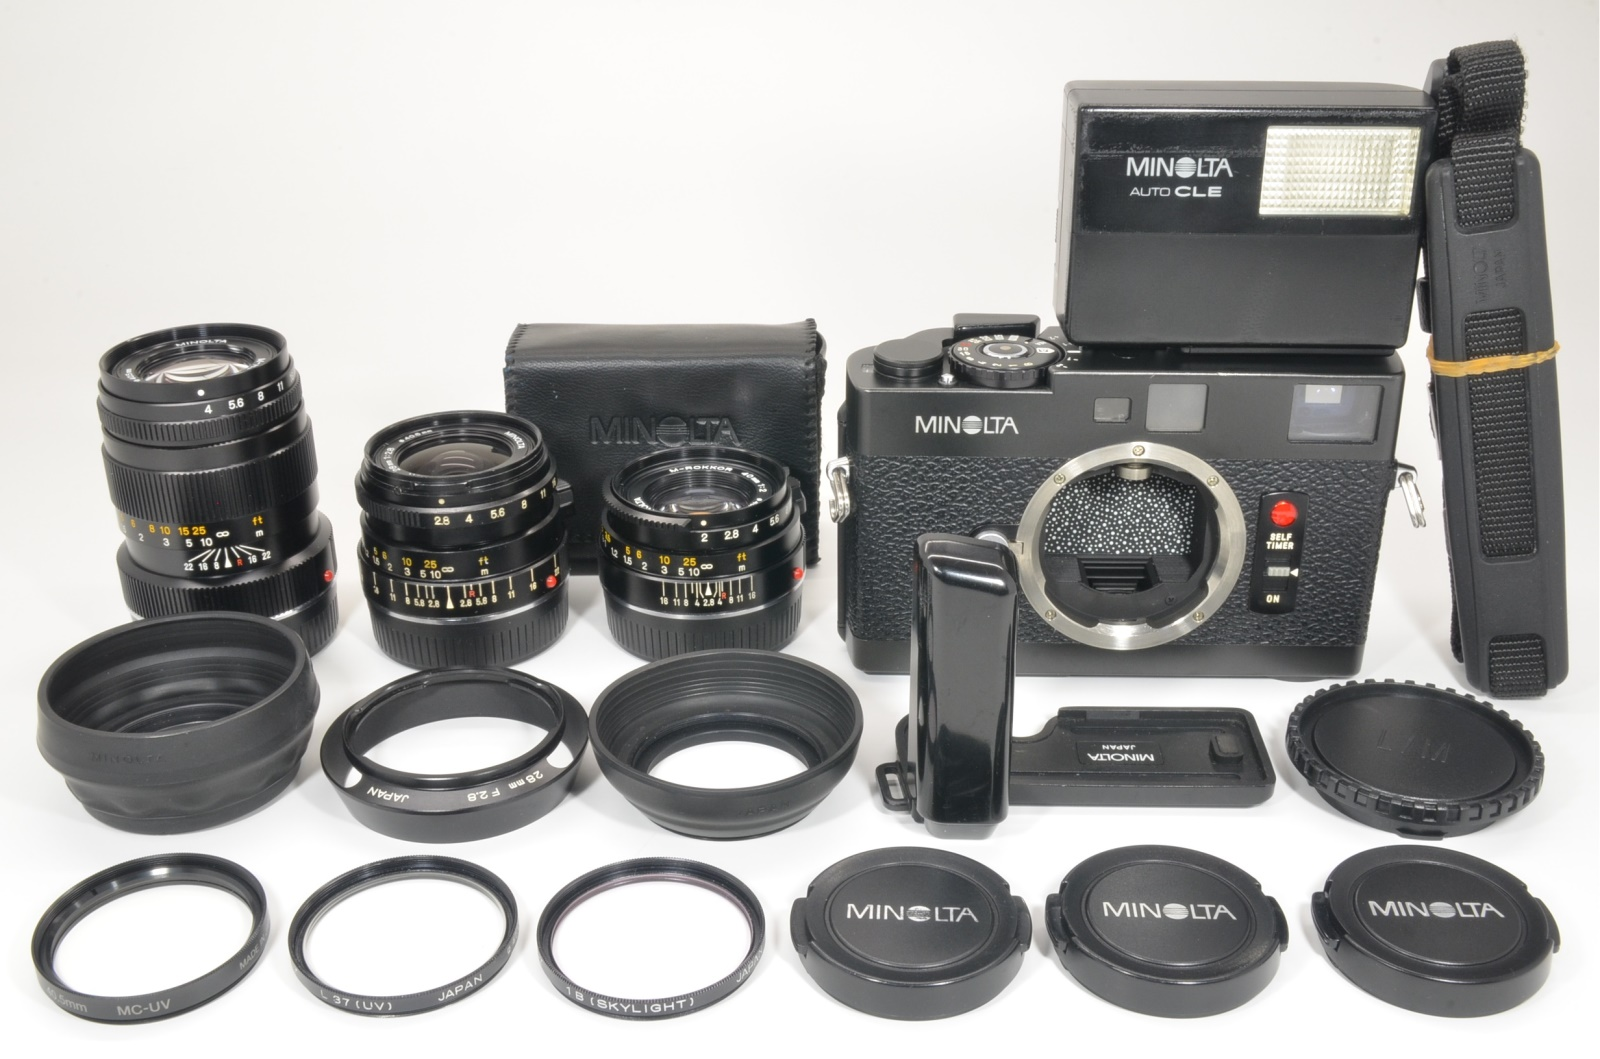 minolta cle 35mm film camera with lens m-rokkor 40mm f2, 28mm f2.8, 90mm f4